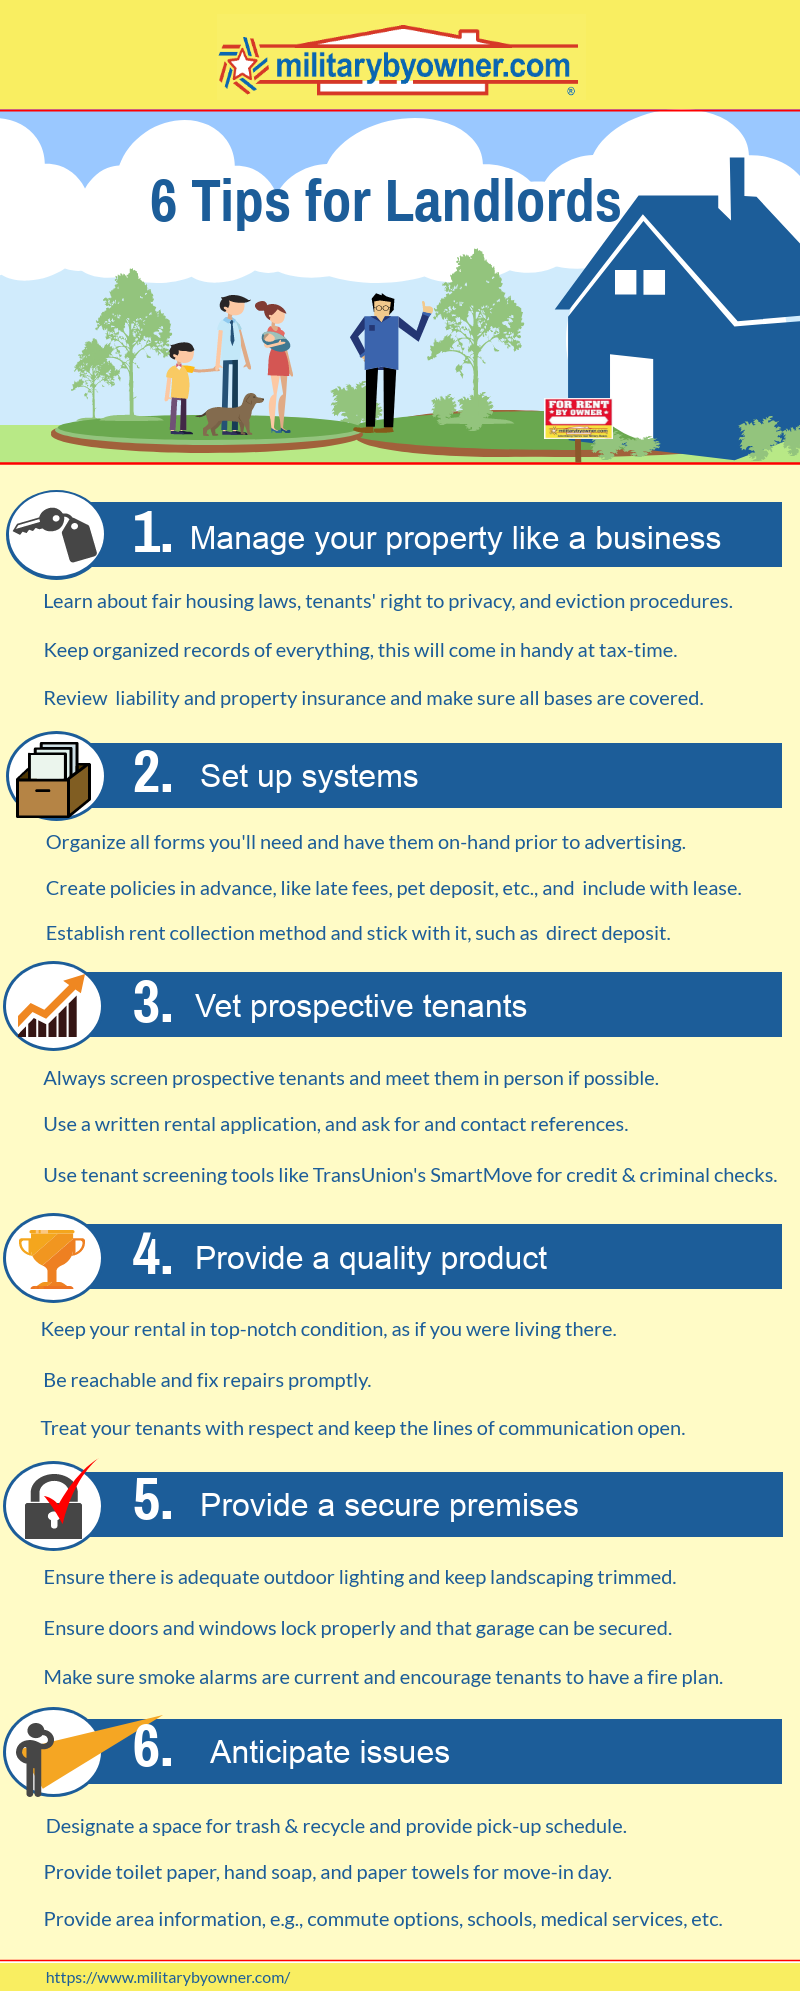 6 Tips for Landlords